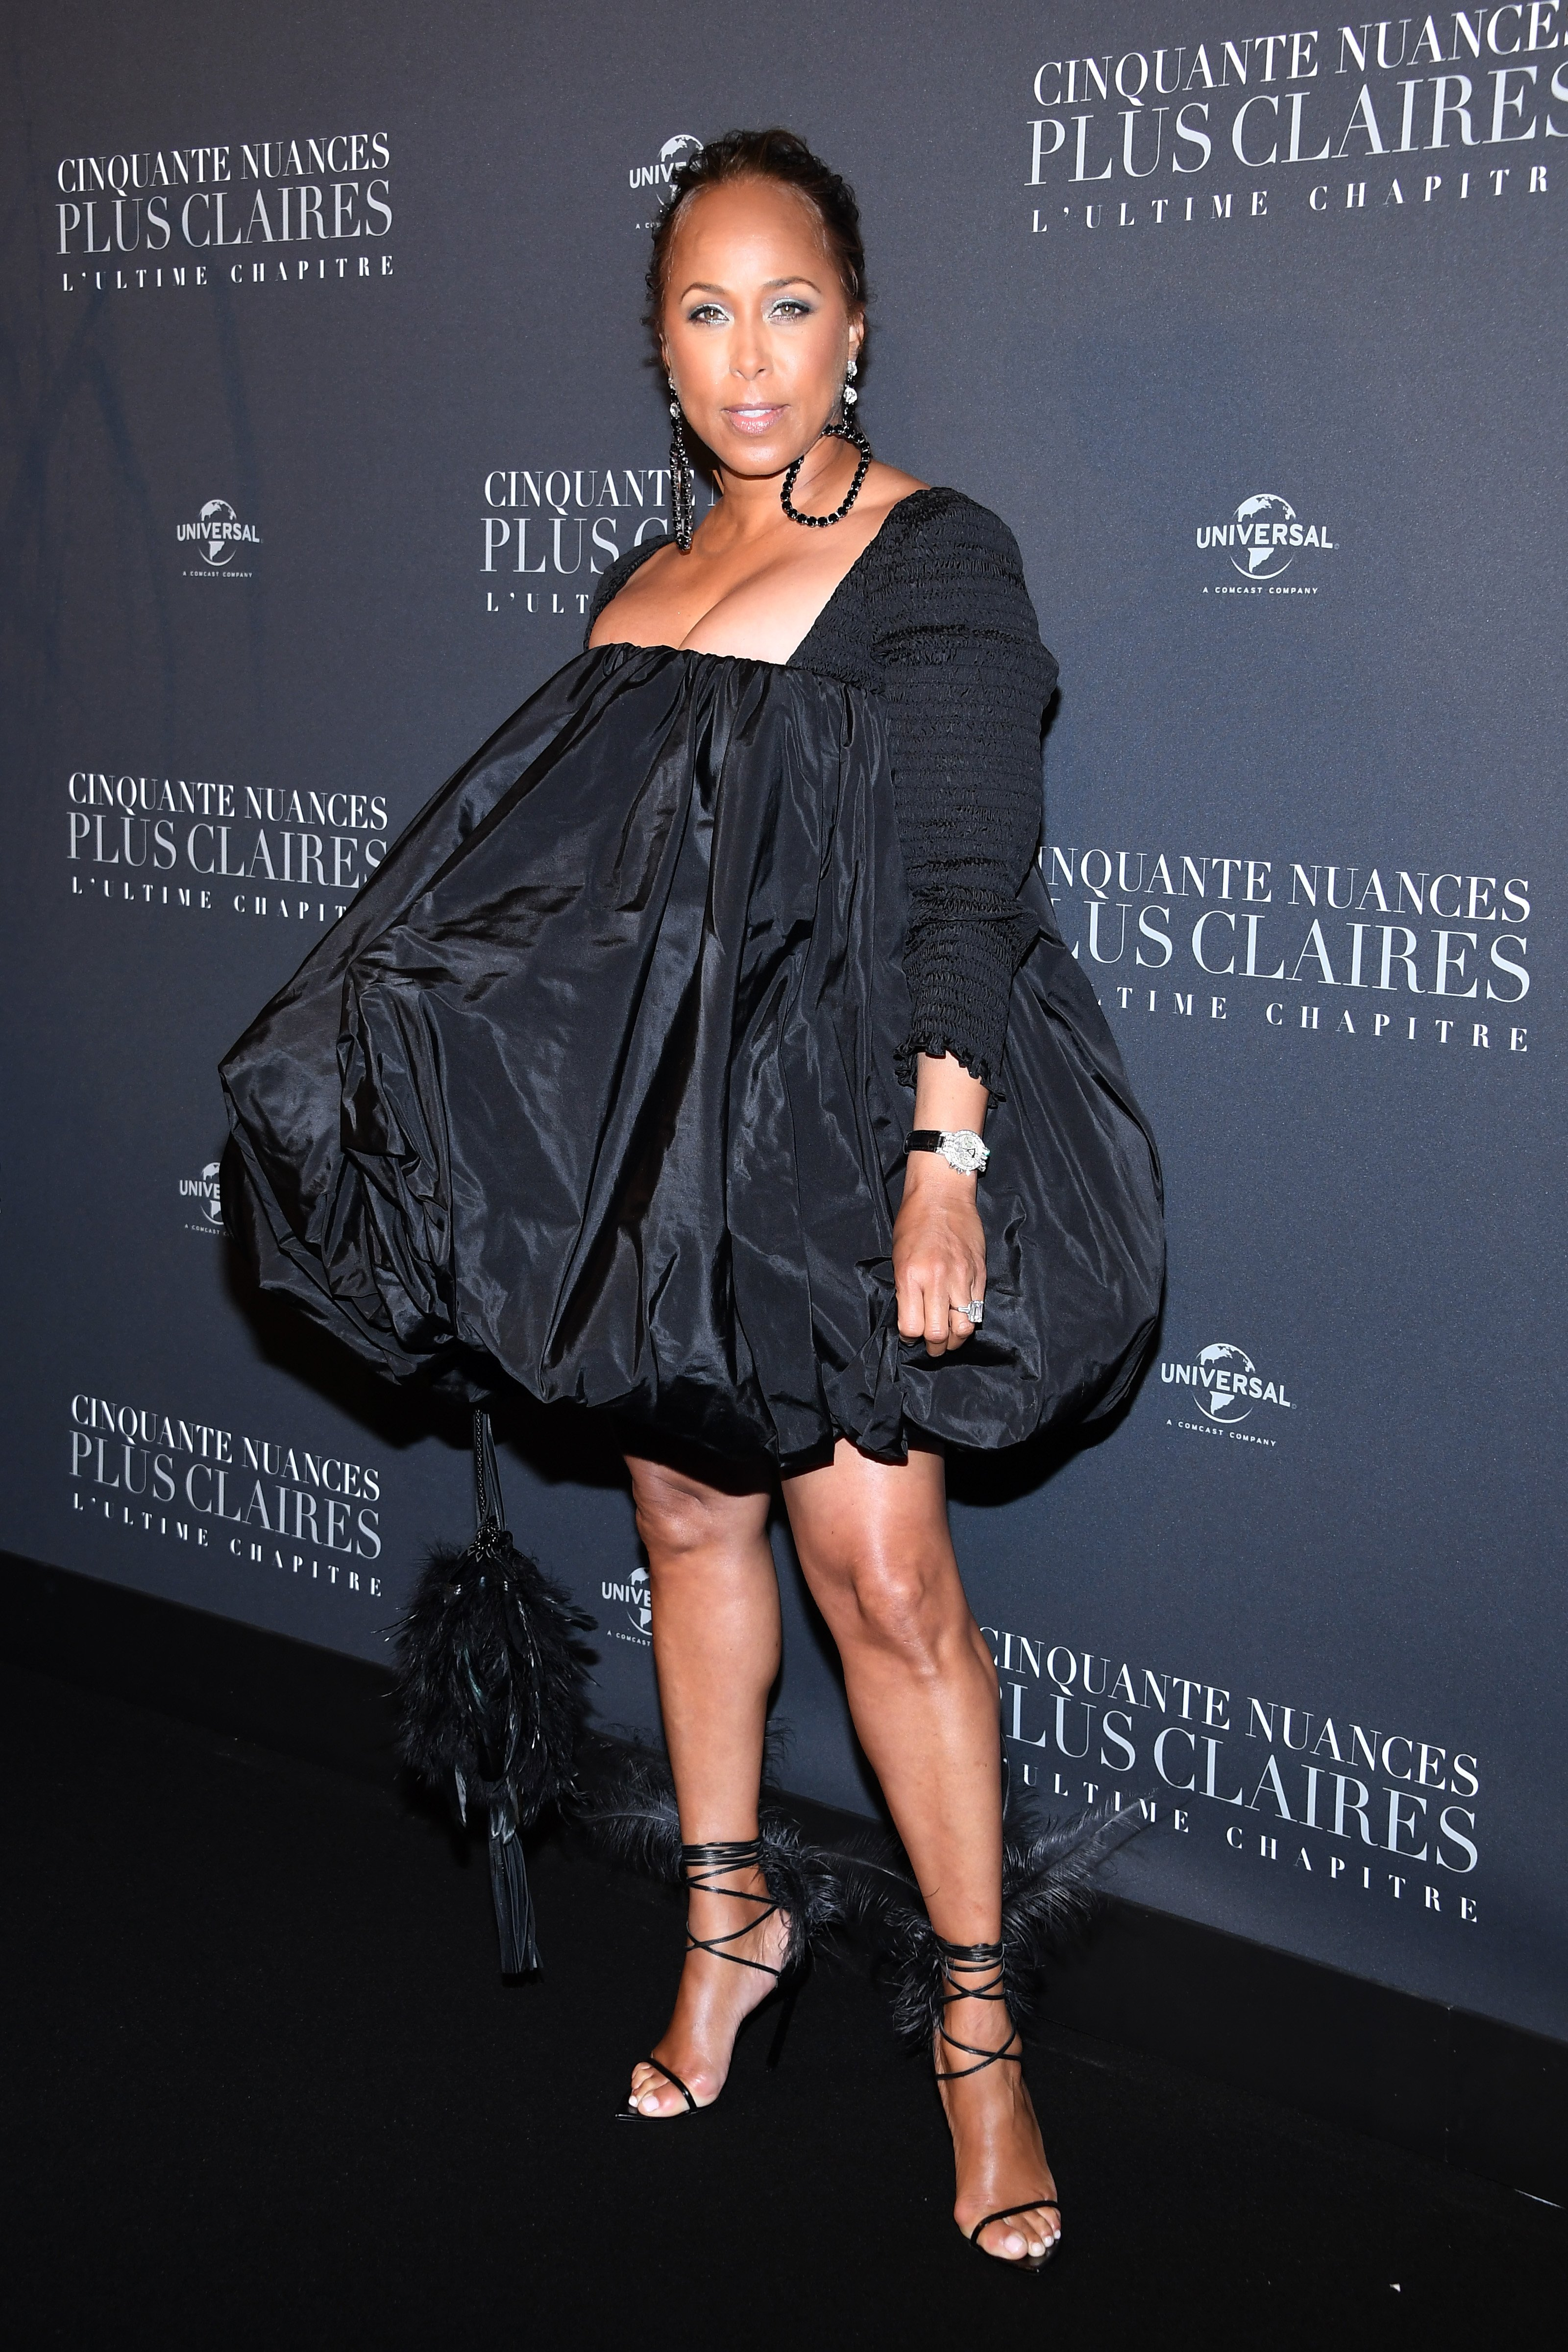 """Marjorie Harvey attending a """"Fifty Shades Freed"""" premiere in Paris in February 2018. 